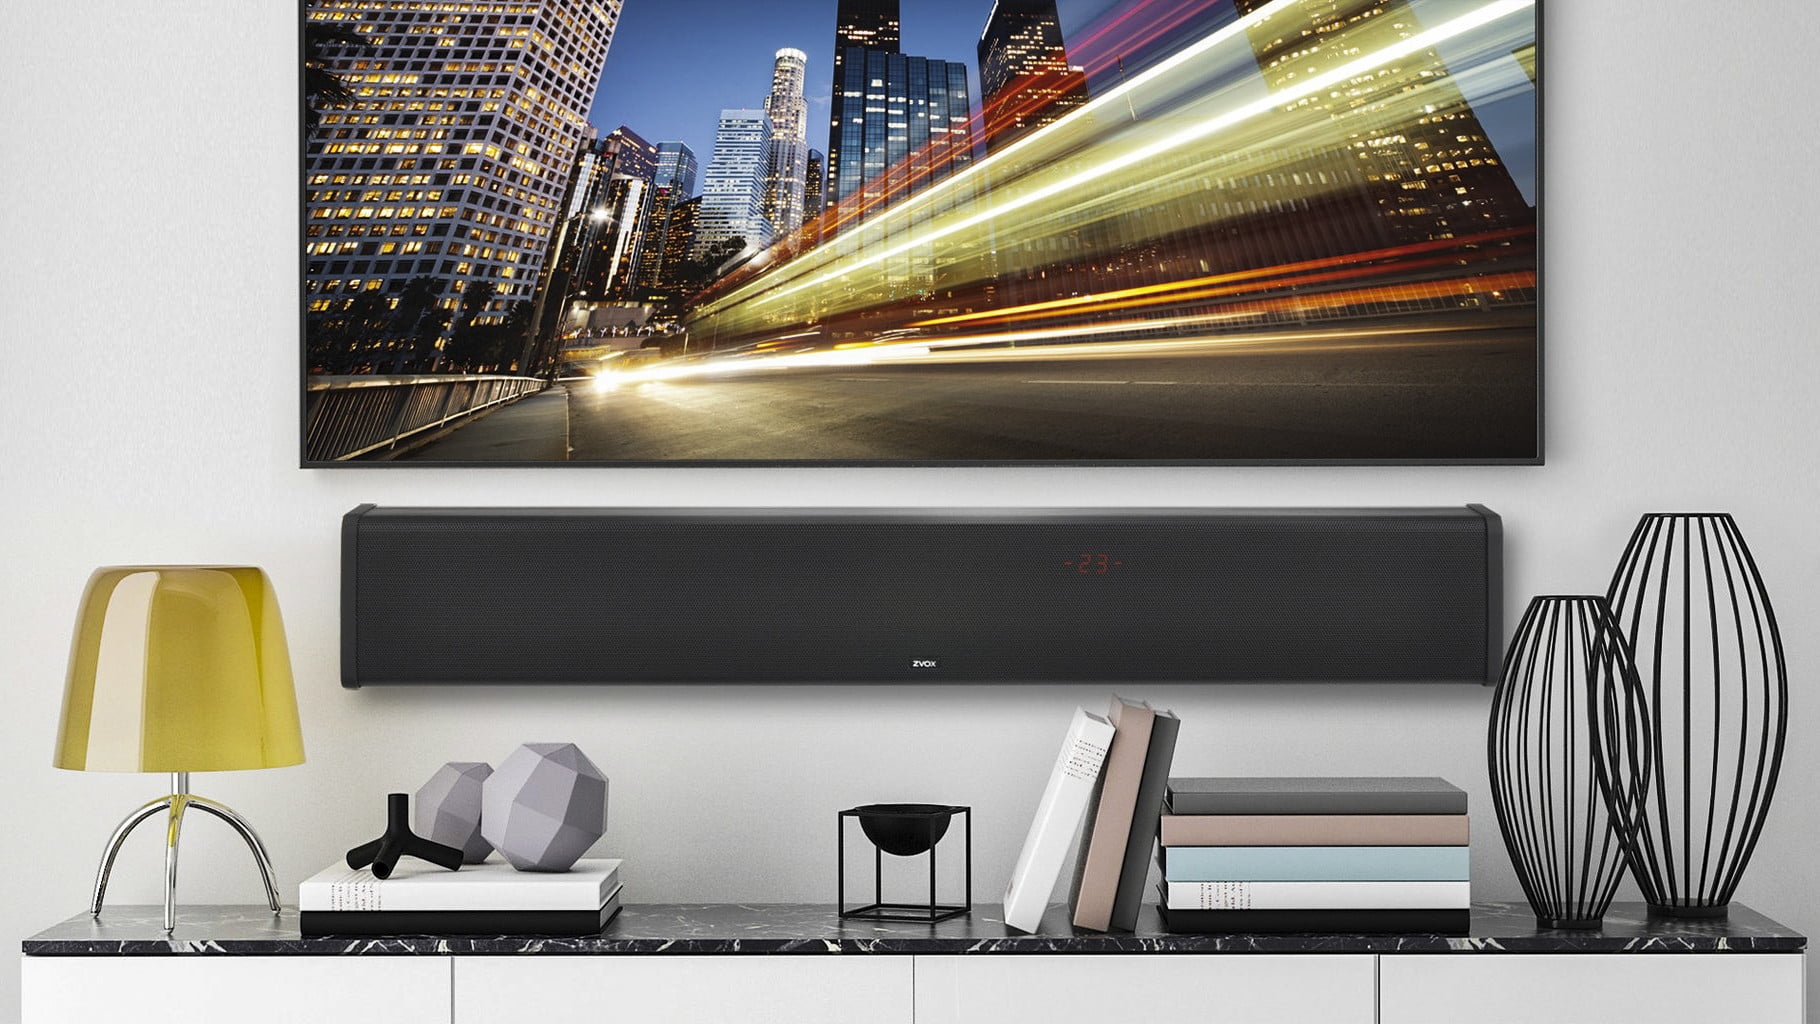 Tech For Change: Zvox Soundbars Cater To The Hard Of Hearing